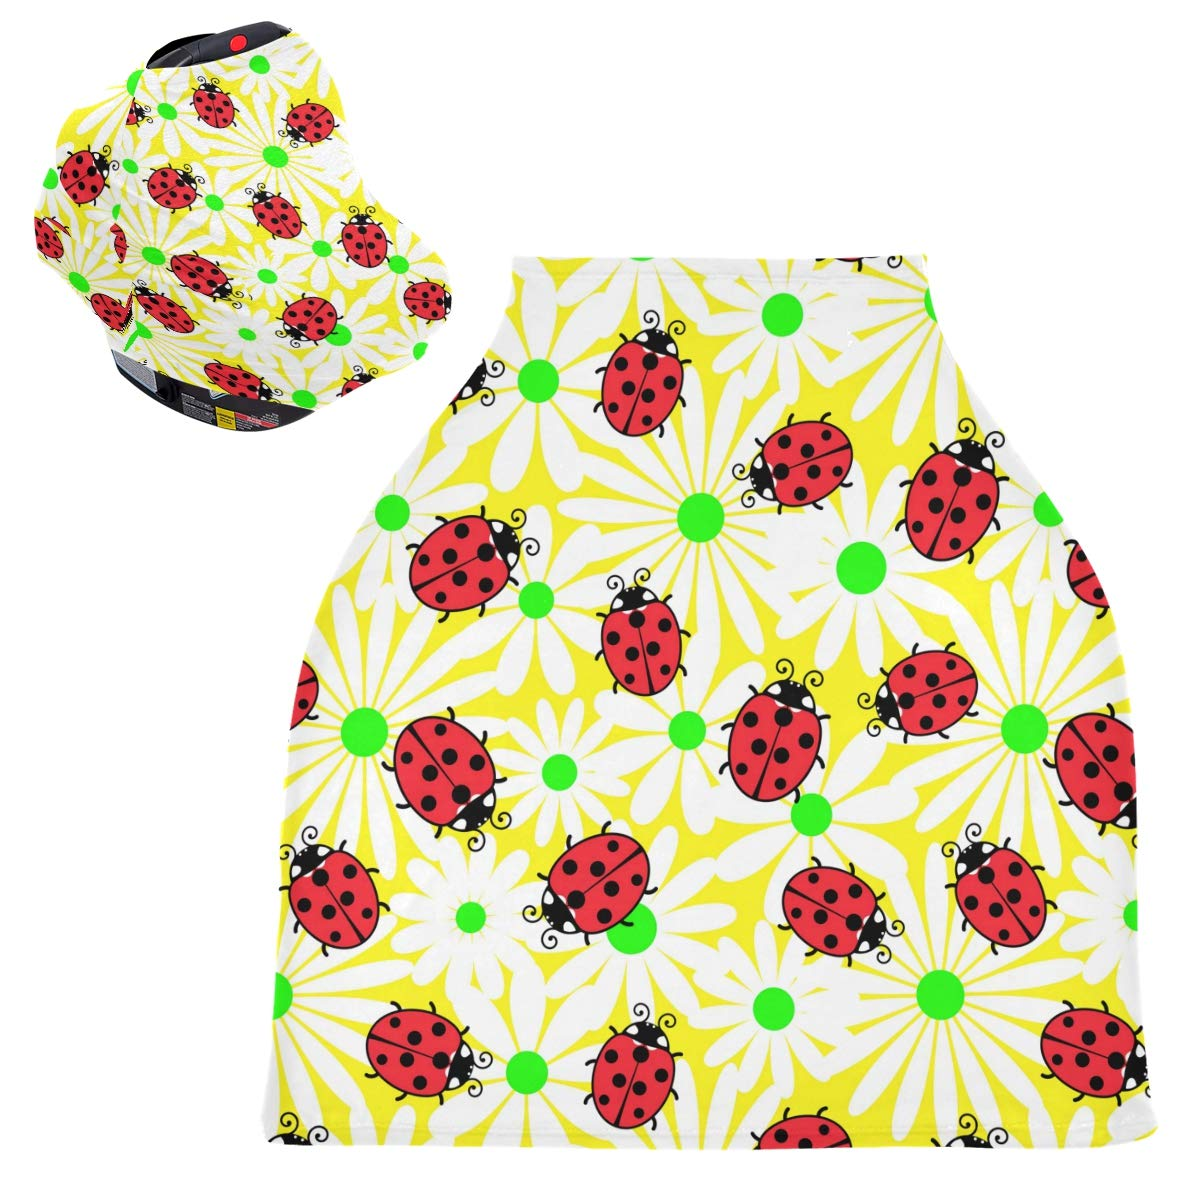 Stretchy Baby Car Seat Canopy - Ladybug Flowers Infant Stroller Cover Multi Use Baby Car Seat Covers Nursing Cover for Baby Boy and Girl